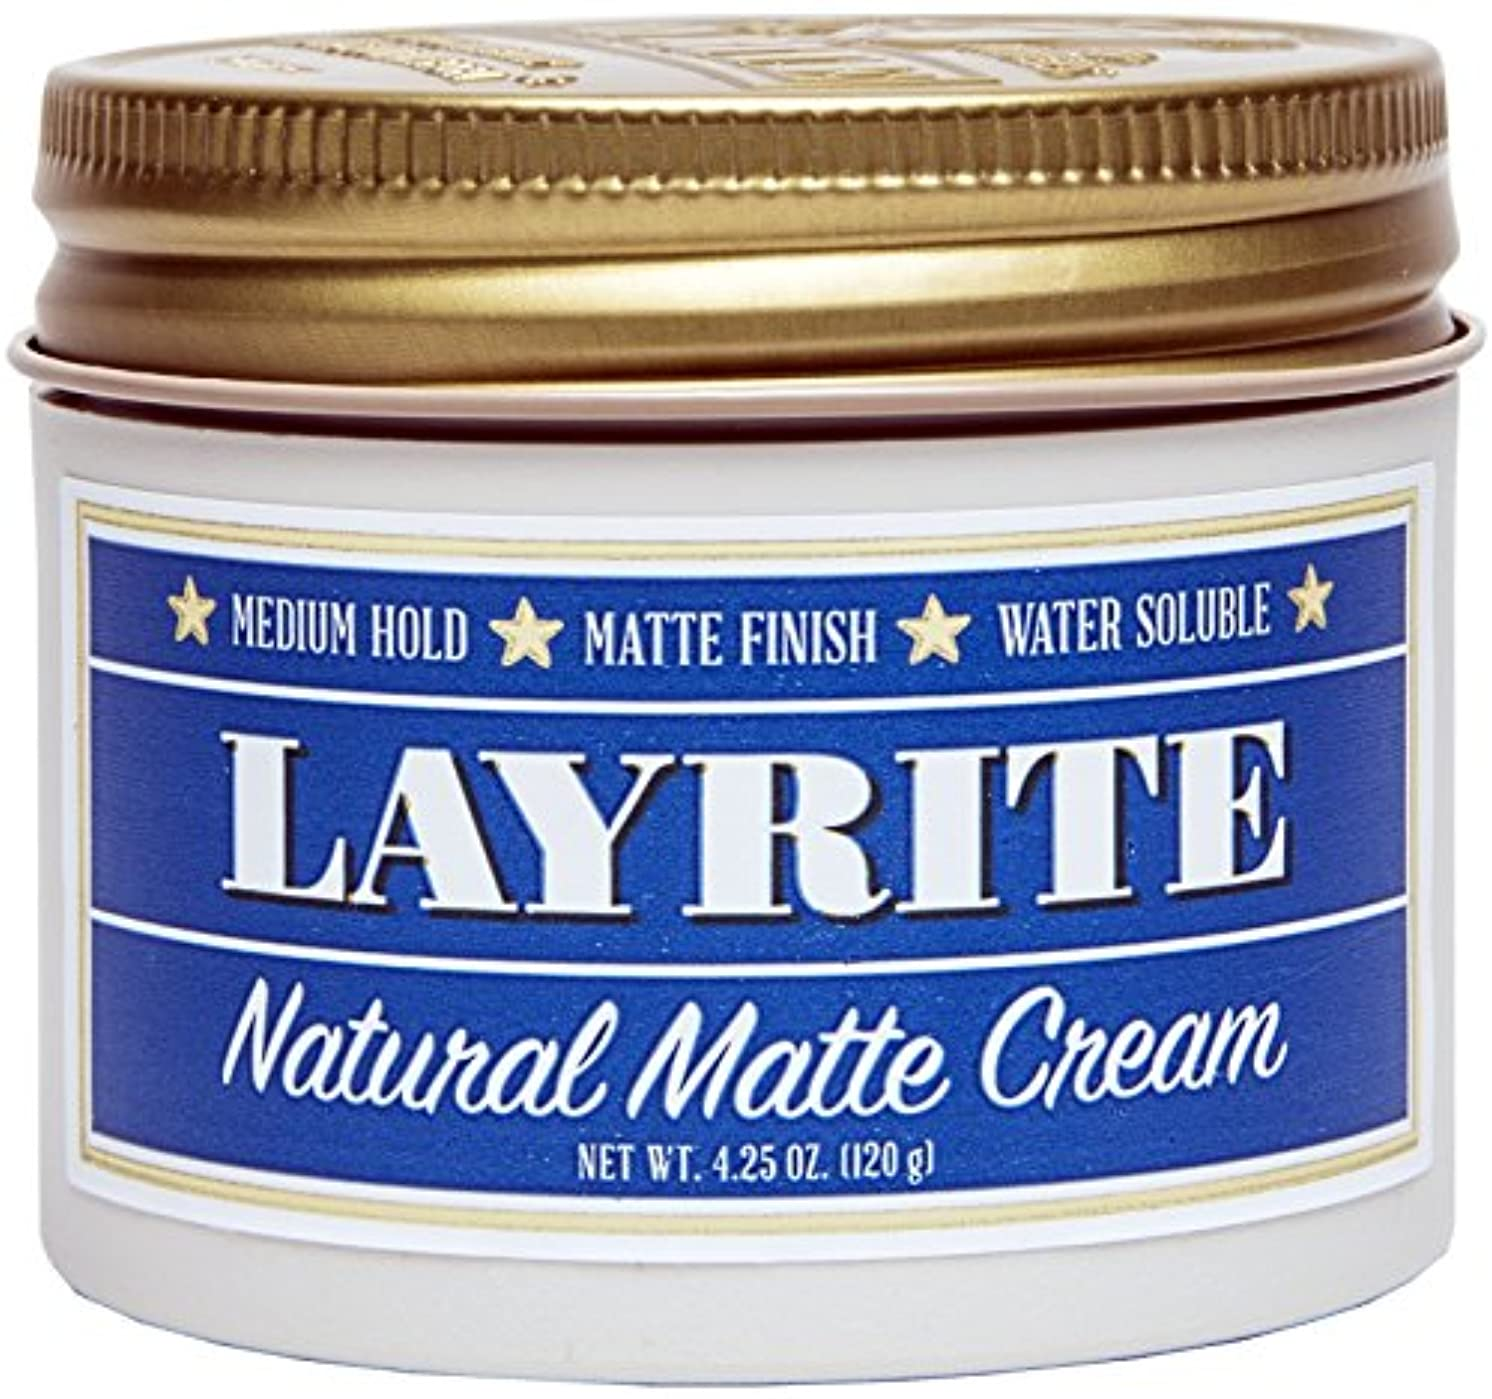 反映するフィルタ基礎Layrite Natural Matte Cream (Medium Hold, Matte Finish, Water Soluble) 120g/4.25oz並行輸入品